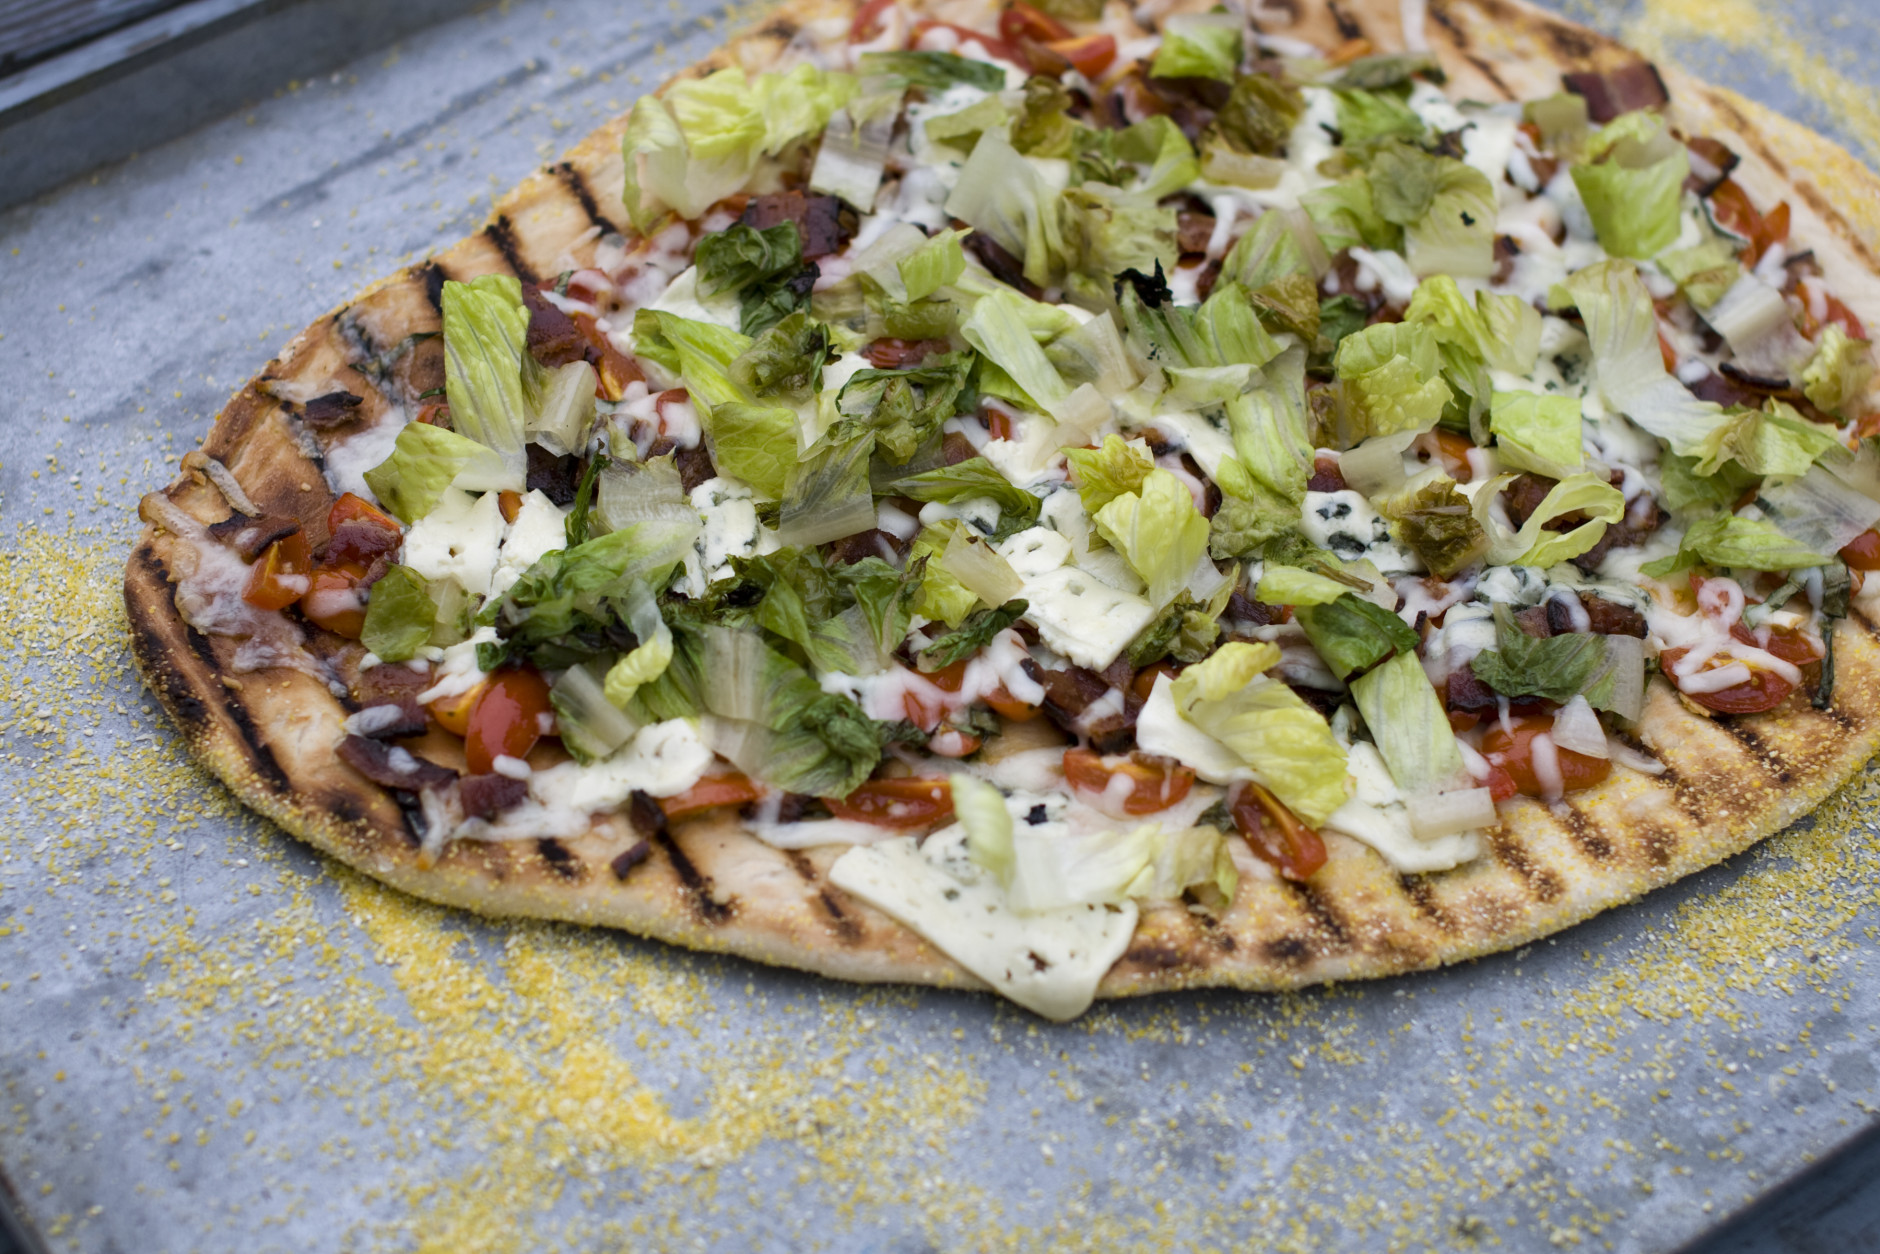 This July 22, 2013 photo taken in Concord, N.H., shows a recipe for grilled BLT pizza with summer tomato-basil sauce. (AP Photo/Matthew Mead)